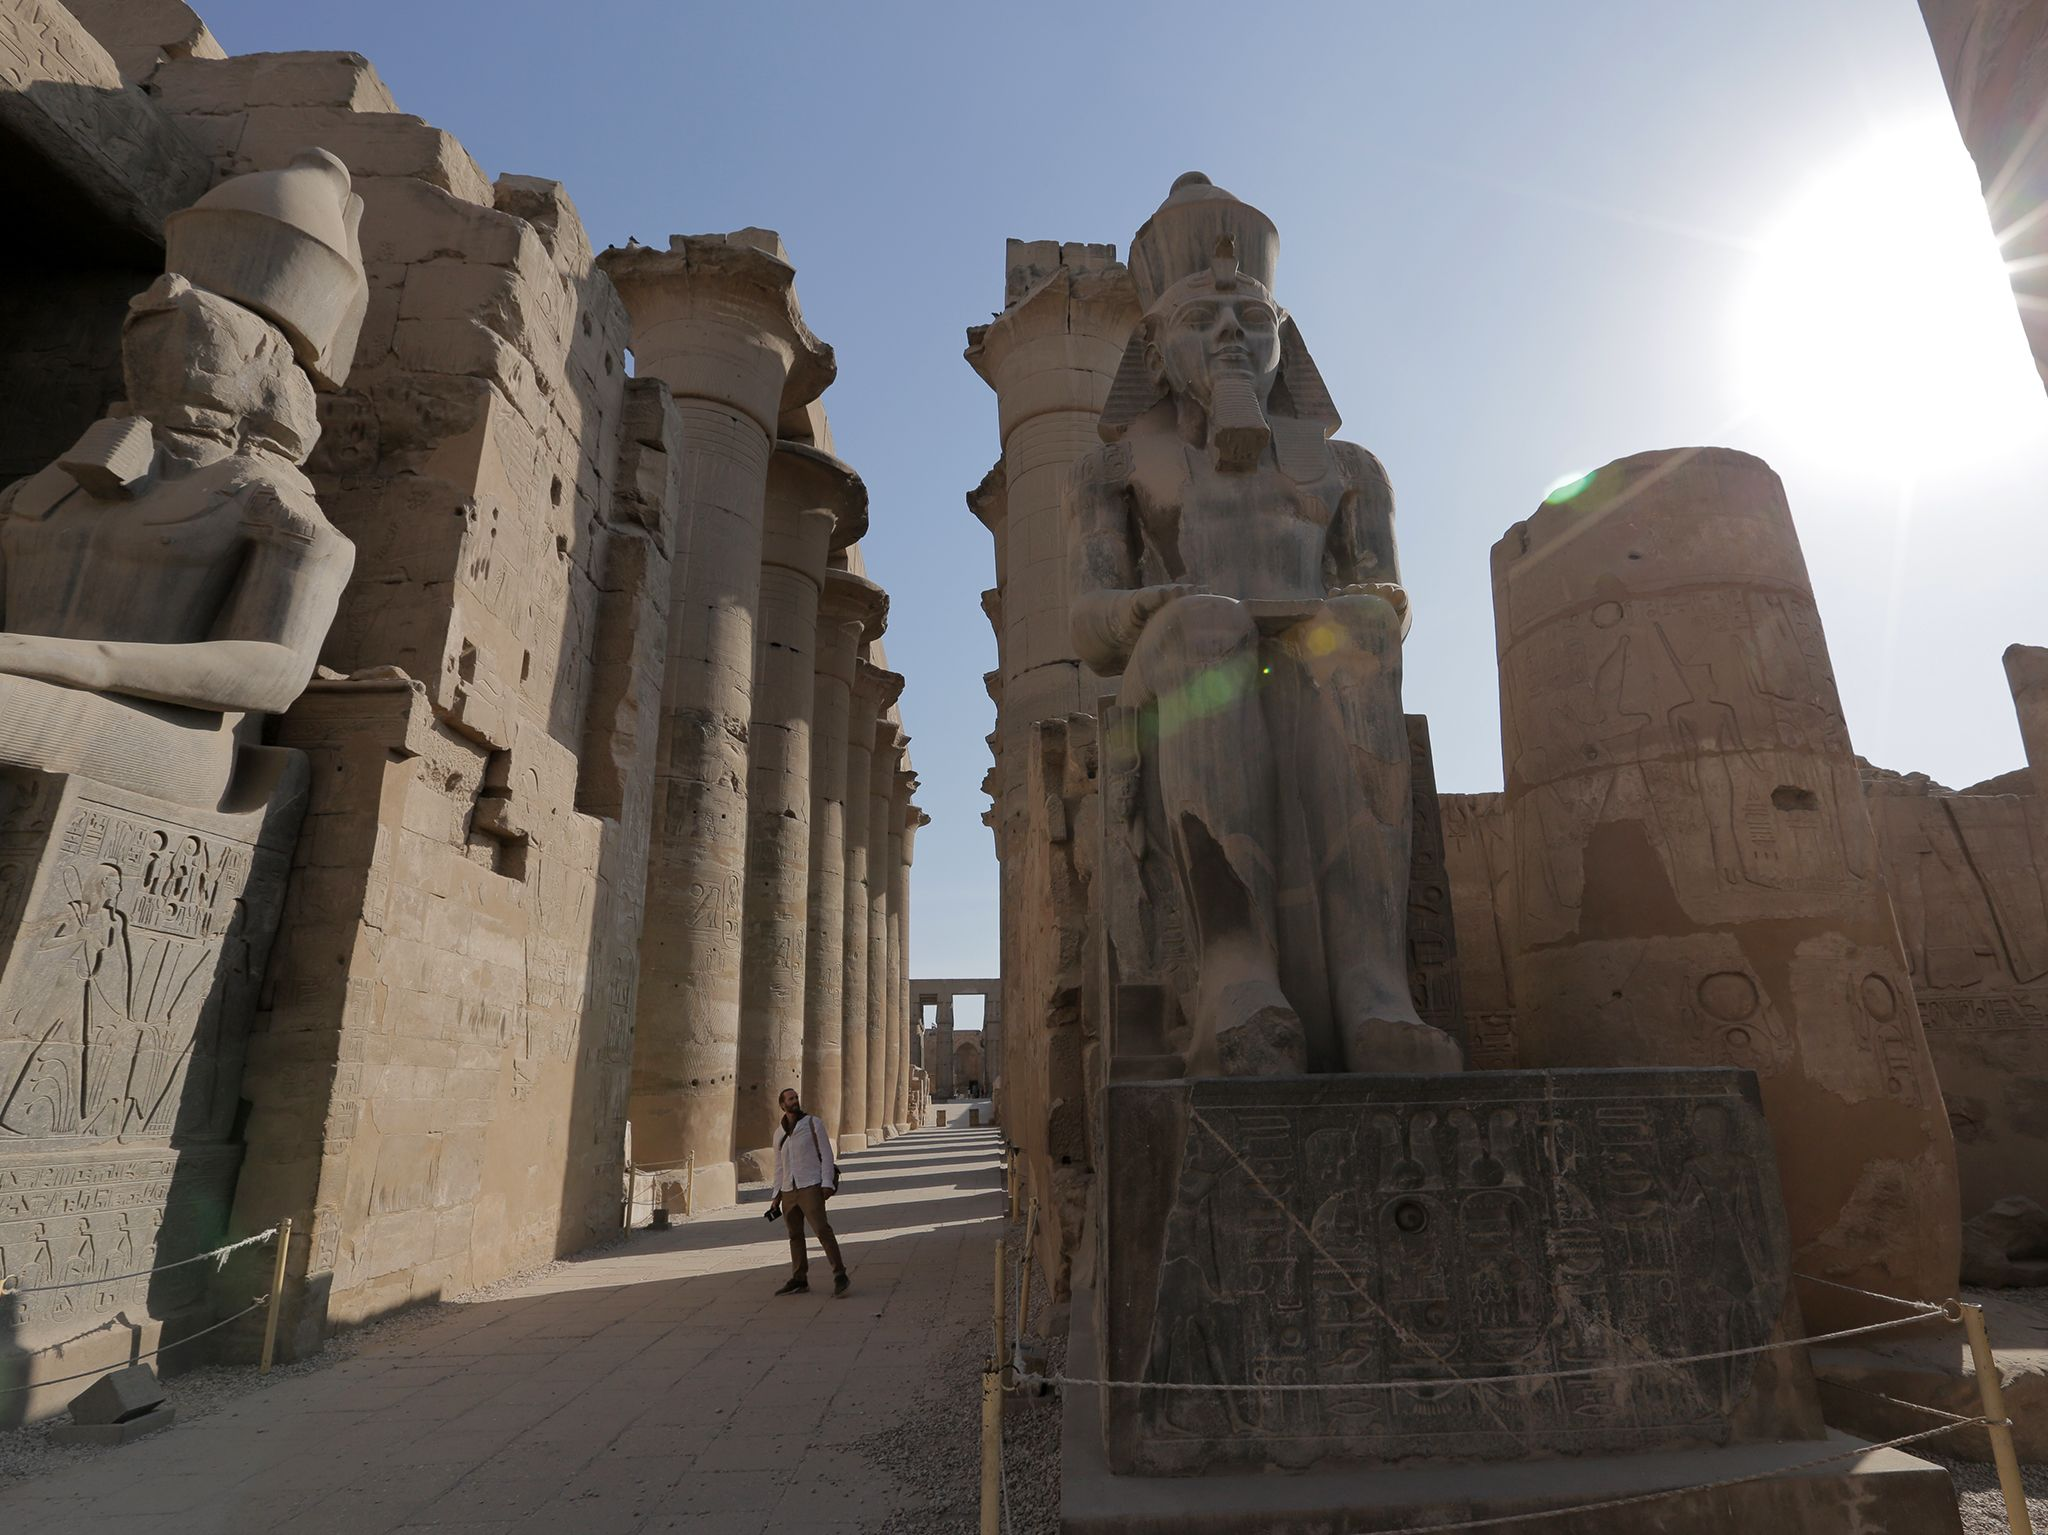 Joe enjoying some time as a tourist visiting Luxor Temple. This image is from Egypt with the... [Photo of the day - April 2019]